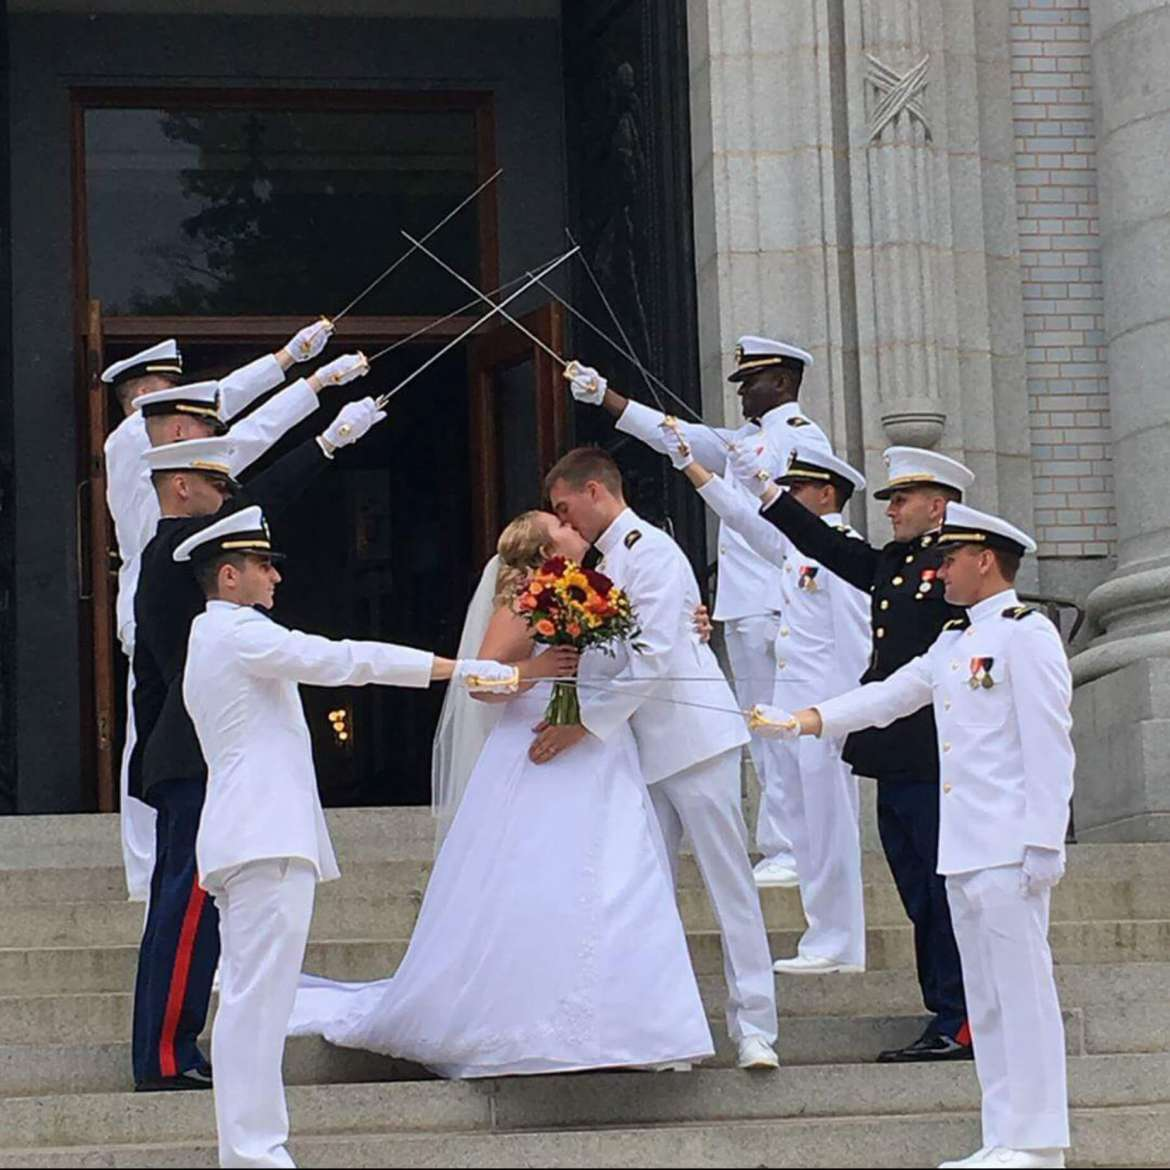 Casey and Hannah Densmore's wedding took place at the U.S. Naval Academy Chapel on May 27. Photo by Andrea Cooper.